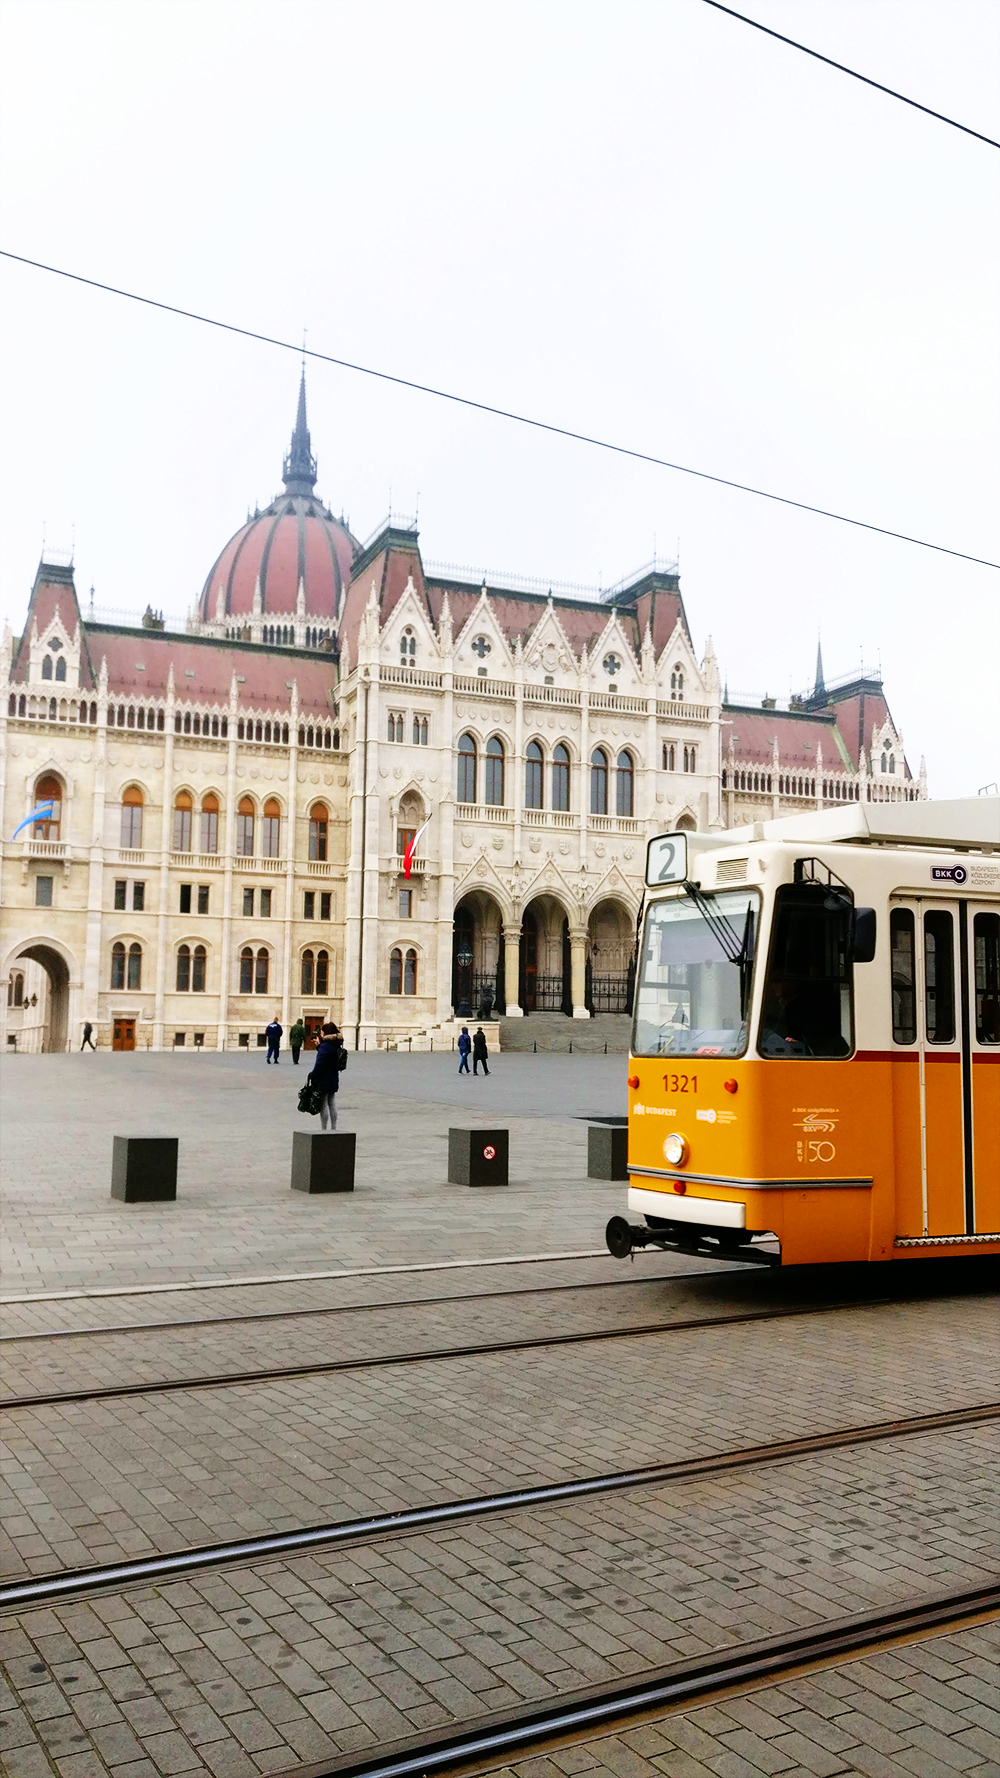 Travel with Tram 2, the tourist sightseeing tram - Relying on tourist buses - 12 mistakes to avoid when visiting Budapest, Hungary | Aliz's Wonderland #Budapest #Budapestguide #Hungary